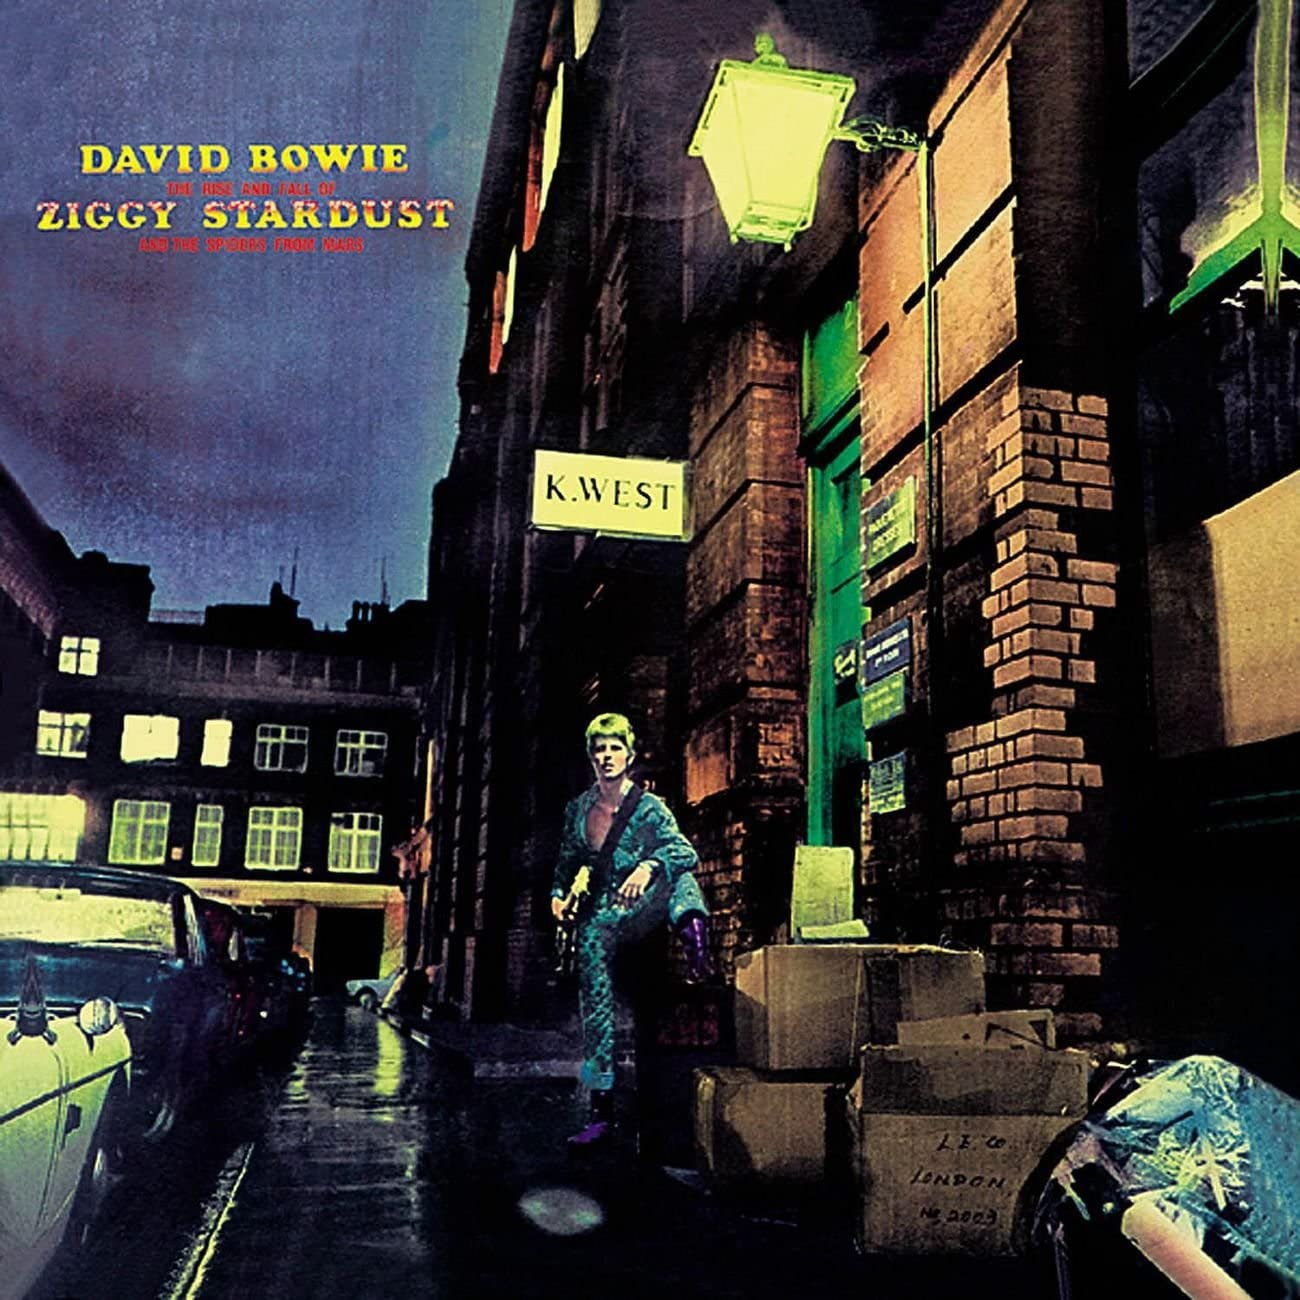 Copertina Vinile 33 giri The Rise And Fall Of Ziggy Stardust di David Bowie